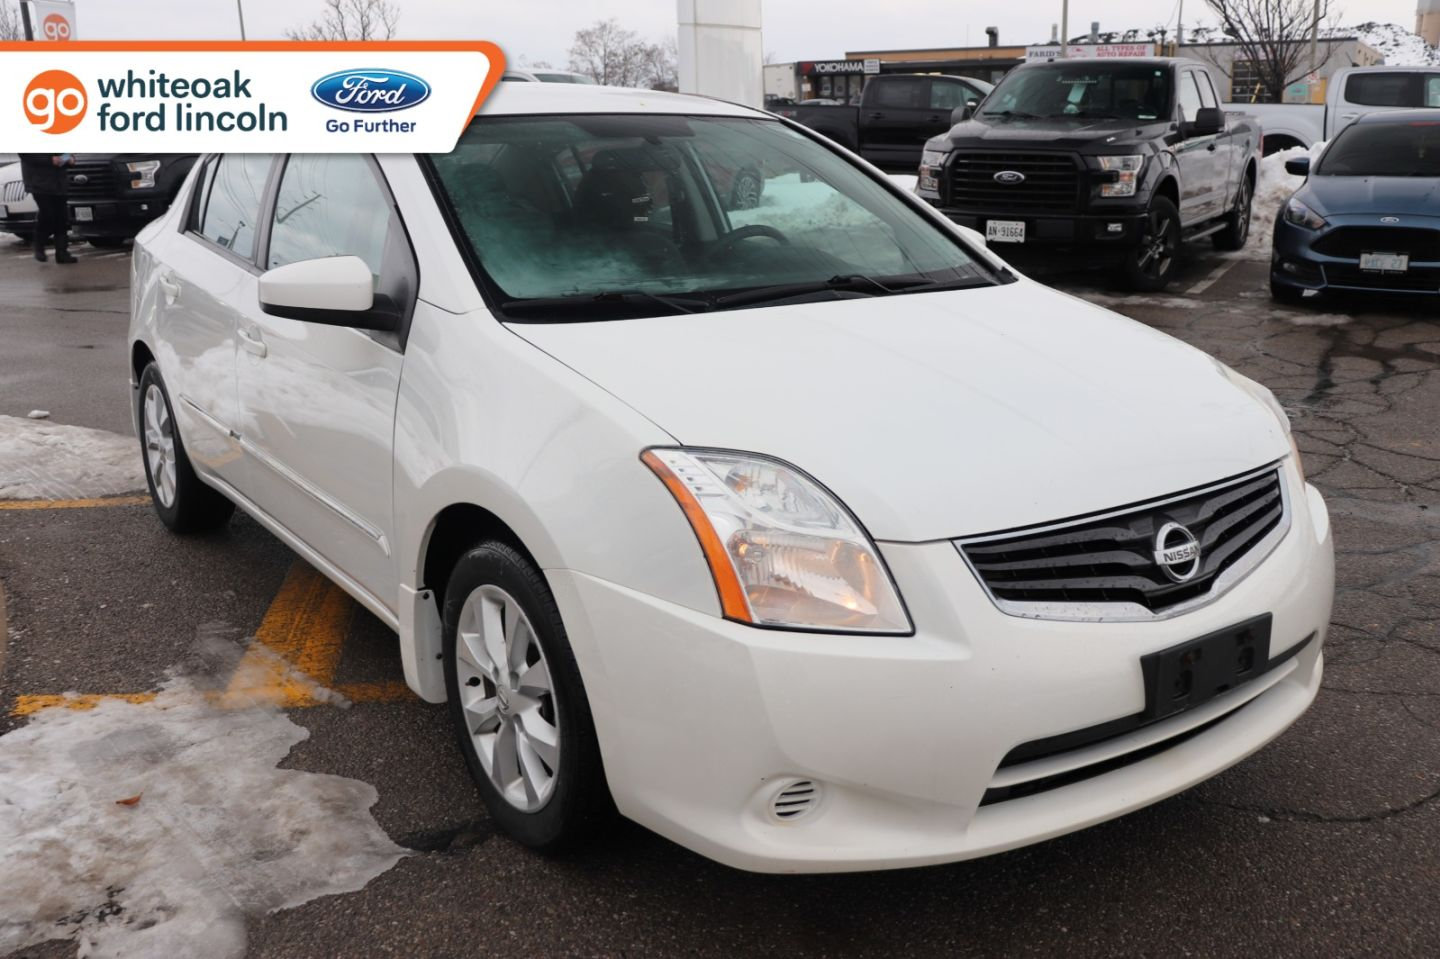 2011 Nissan Sentra 2.0 S for sale in Mississauga, Ontario